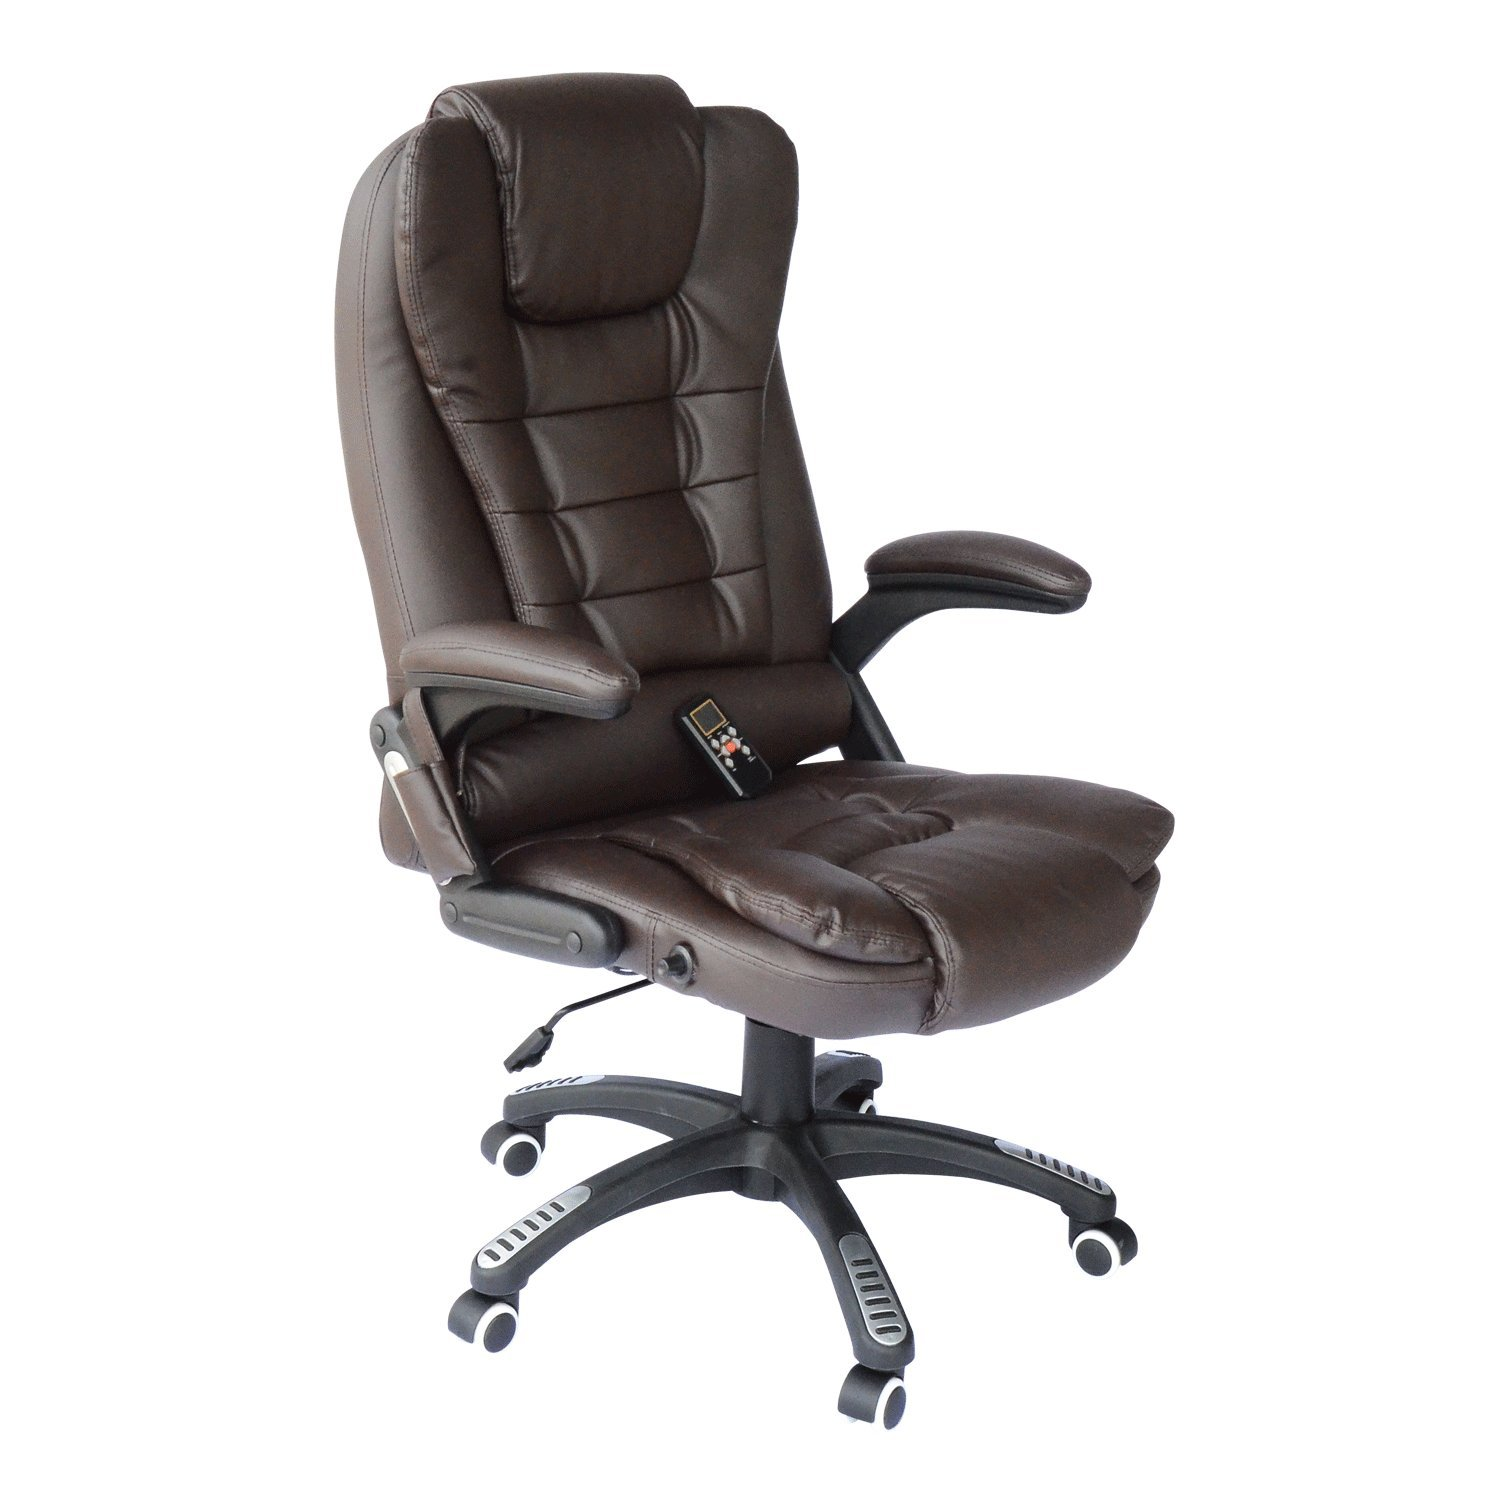 Heated Vibrating Computer Desk Office Massage Chair Executive Ergonomic (One Size, Brown)